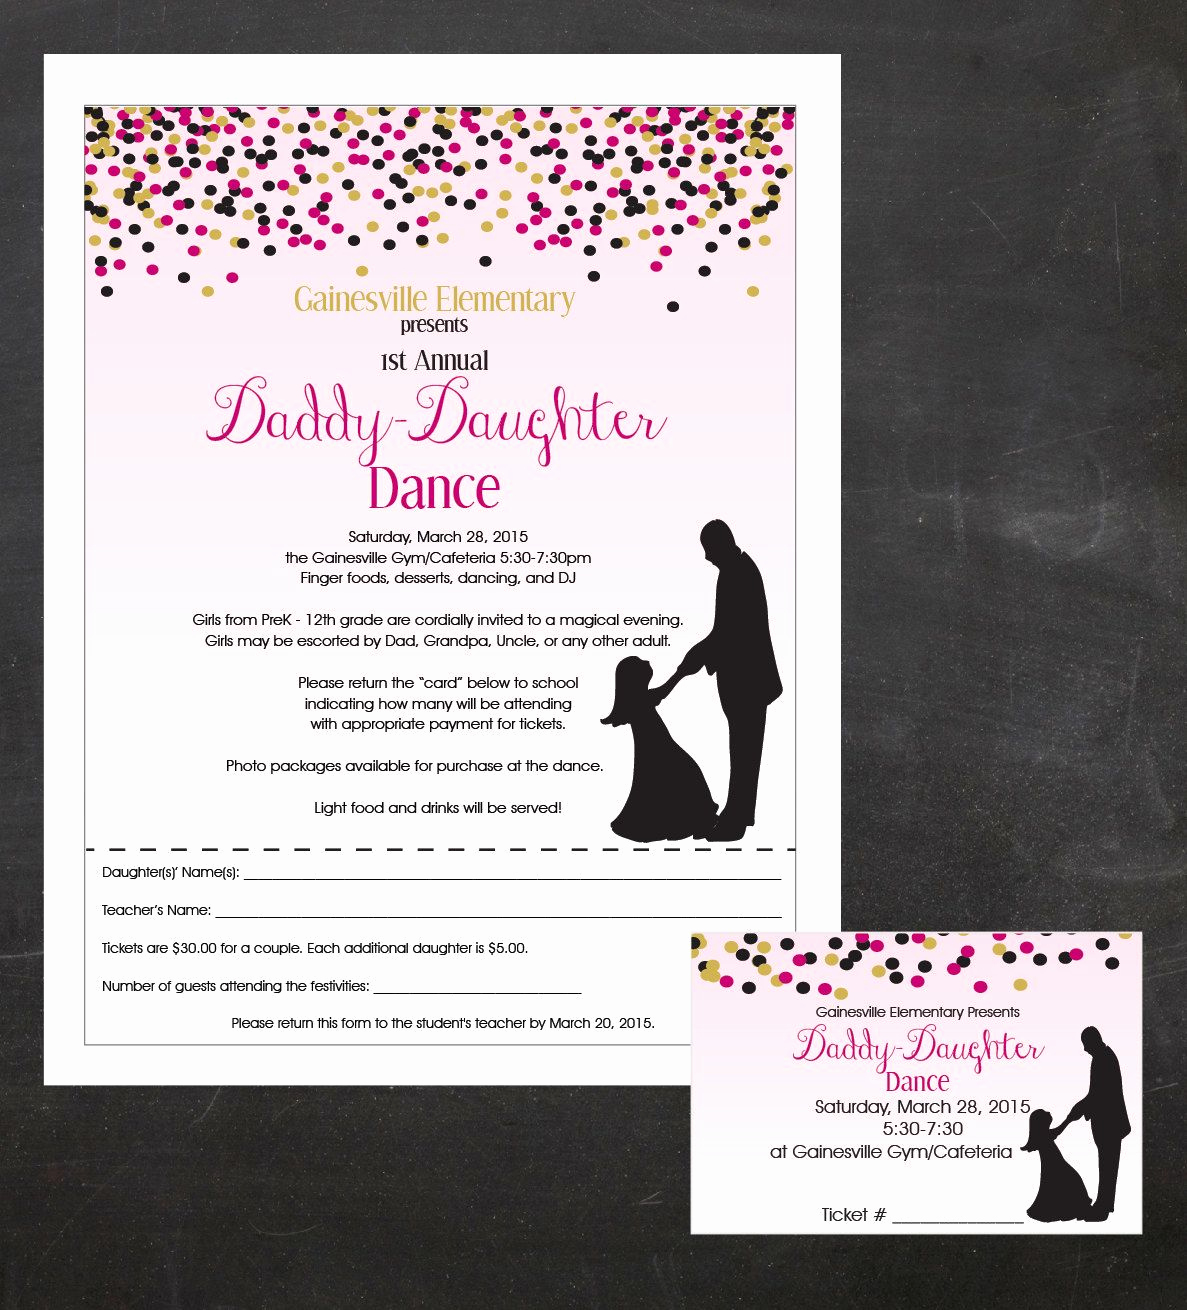 Father Daughter Dance Invitation Wording Luxury Daddy Daughter Dance Father and Daughter Dancing event